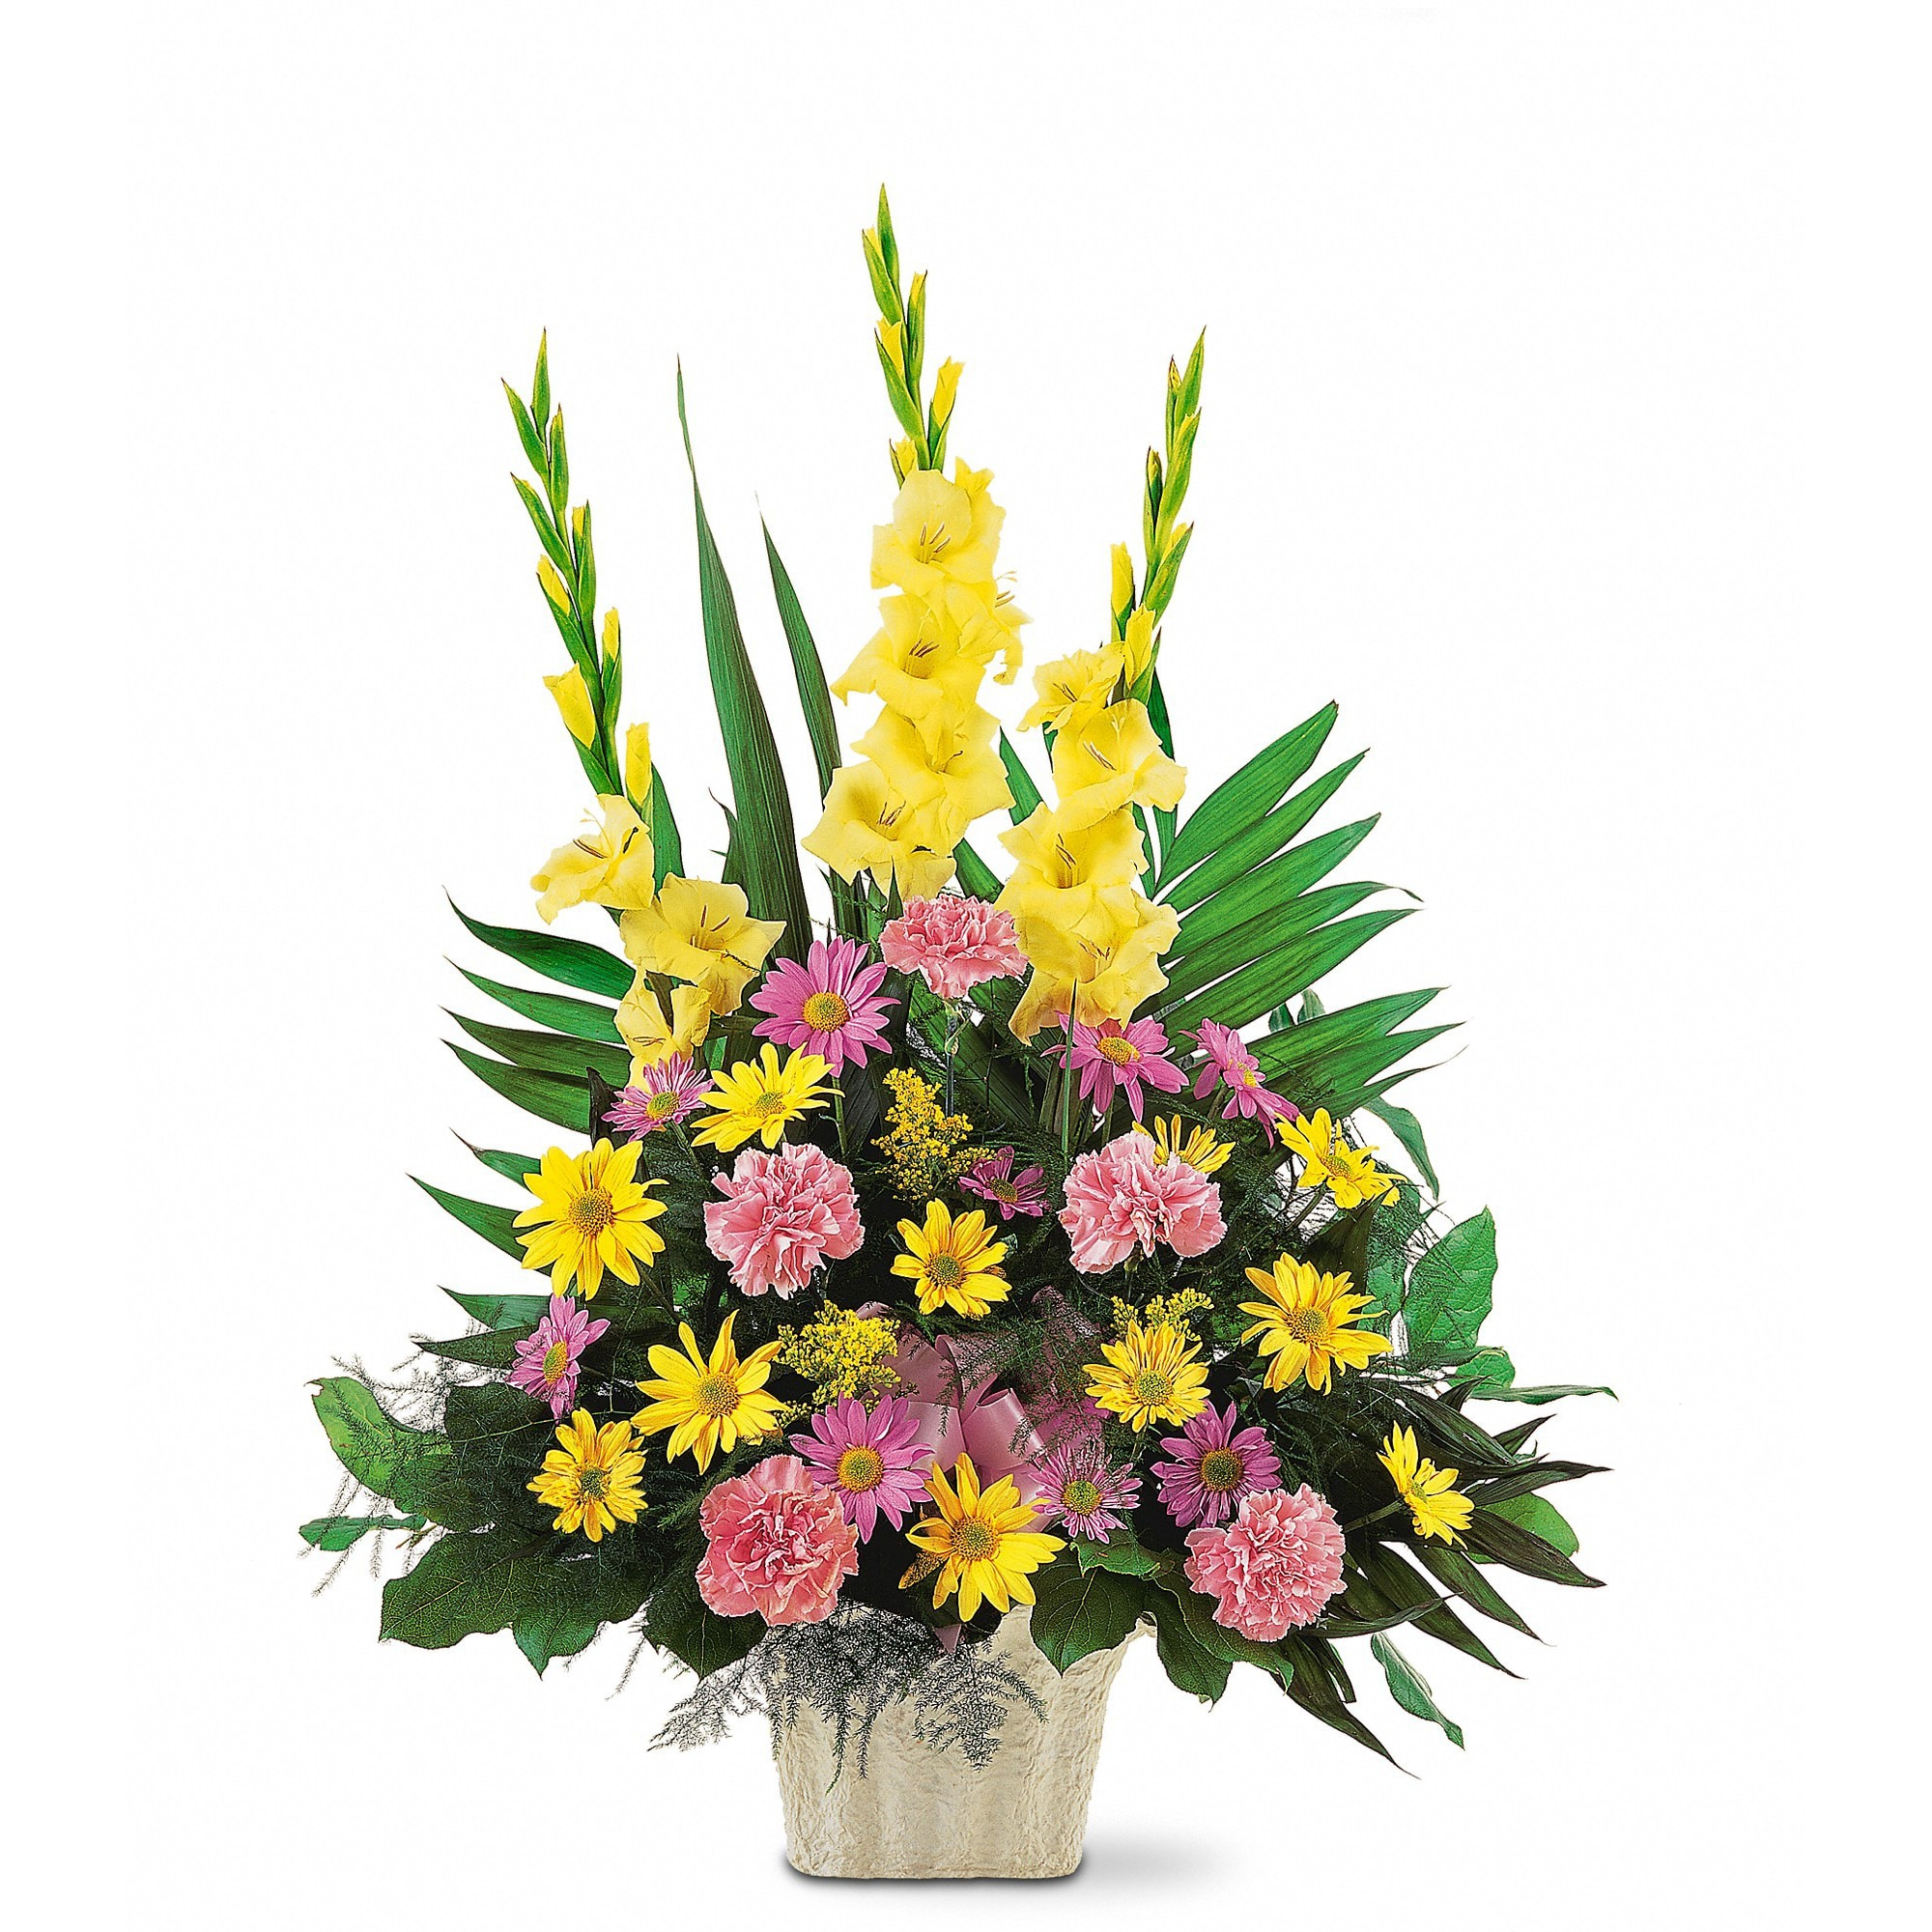 Warm Thoughts Arrangement by Teleflora in Winston Salem, NC | Florista By  Adolfos Creation Inc